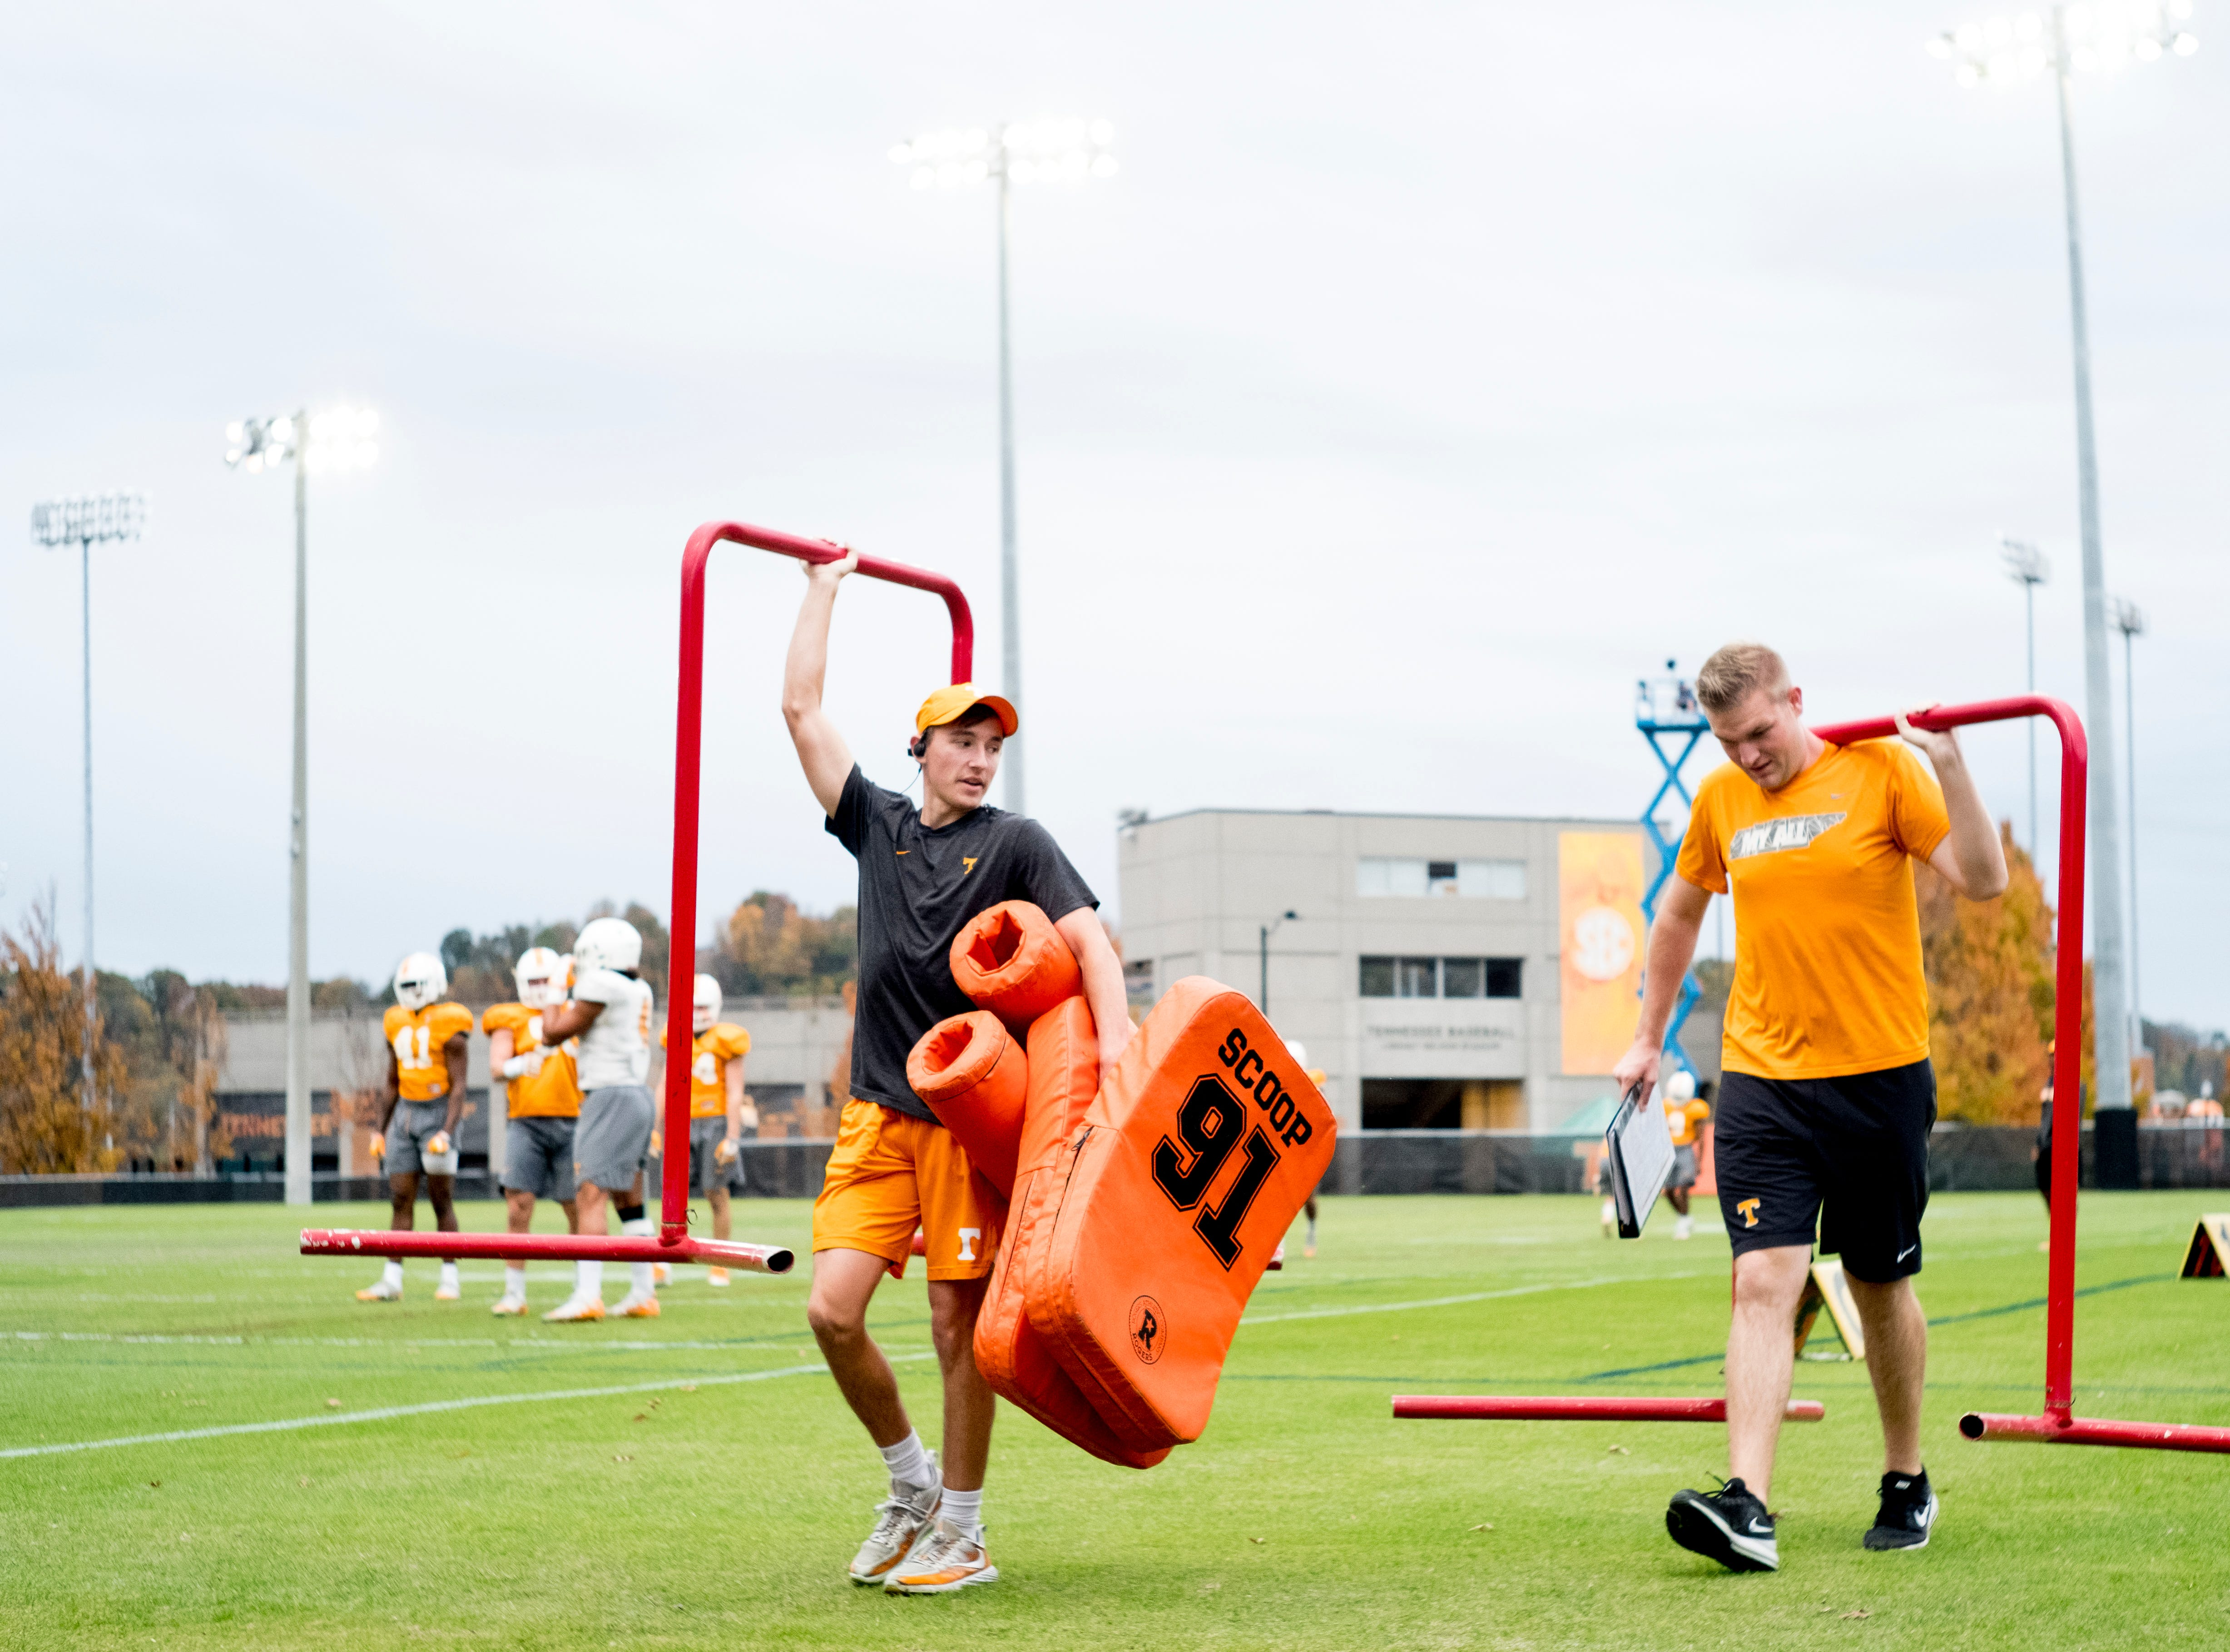 Team members carry equipment from the field during Tennessee fall football practice at Haslam Field in Knoxville, Tennessee on Wednesday, November 7, 2018.